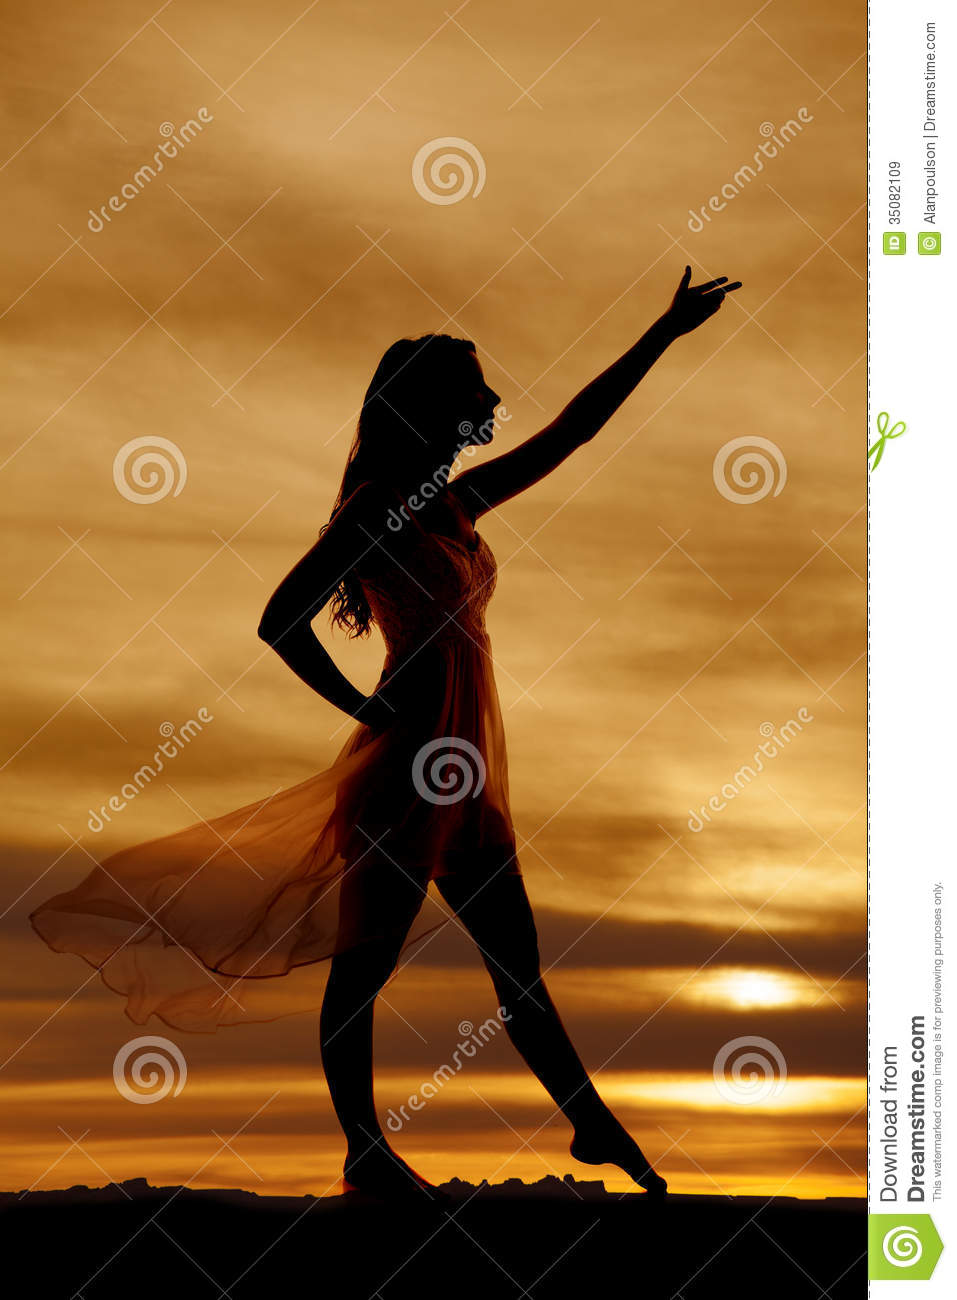 Simple Dress Blowing Up Woman Stock Photo 53181367  Shutterstock